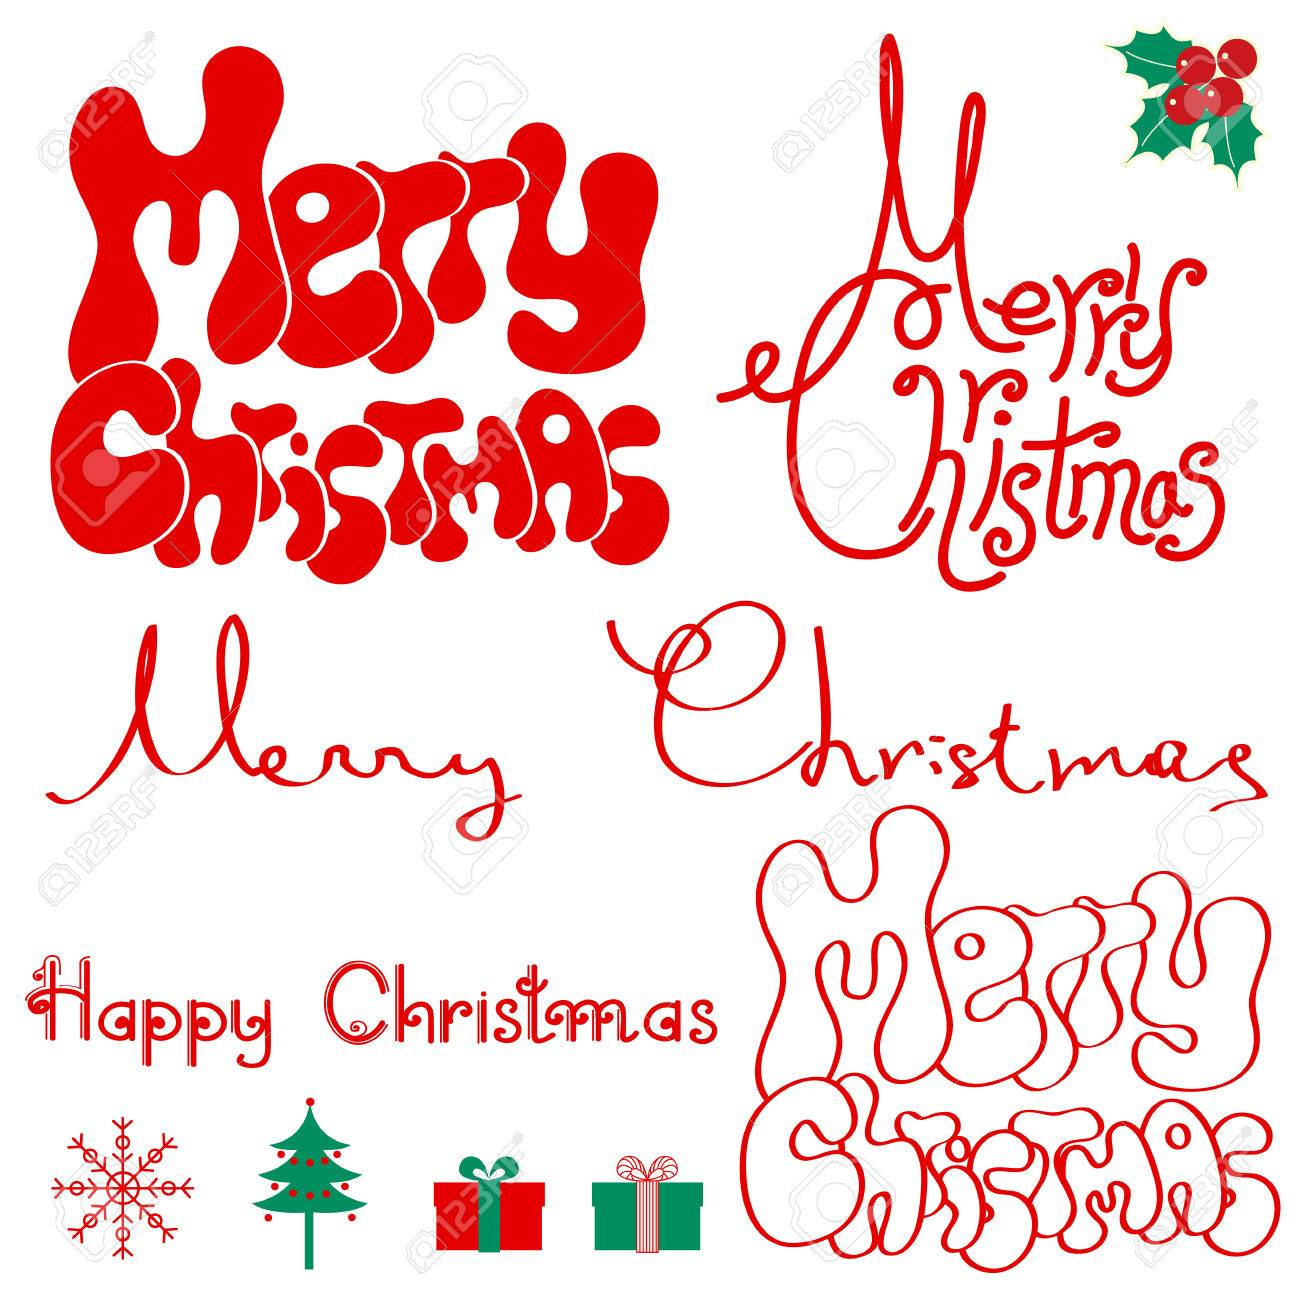 Merry Christmas Text Isolated On White For Design Royalty Free ...